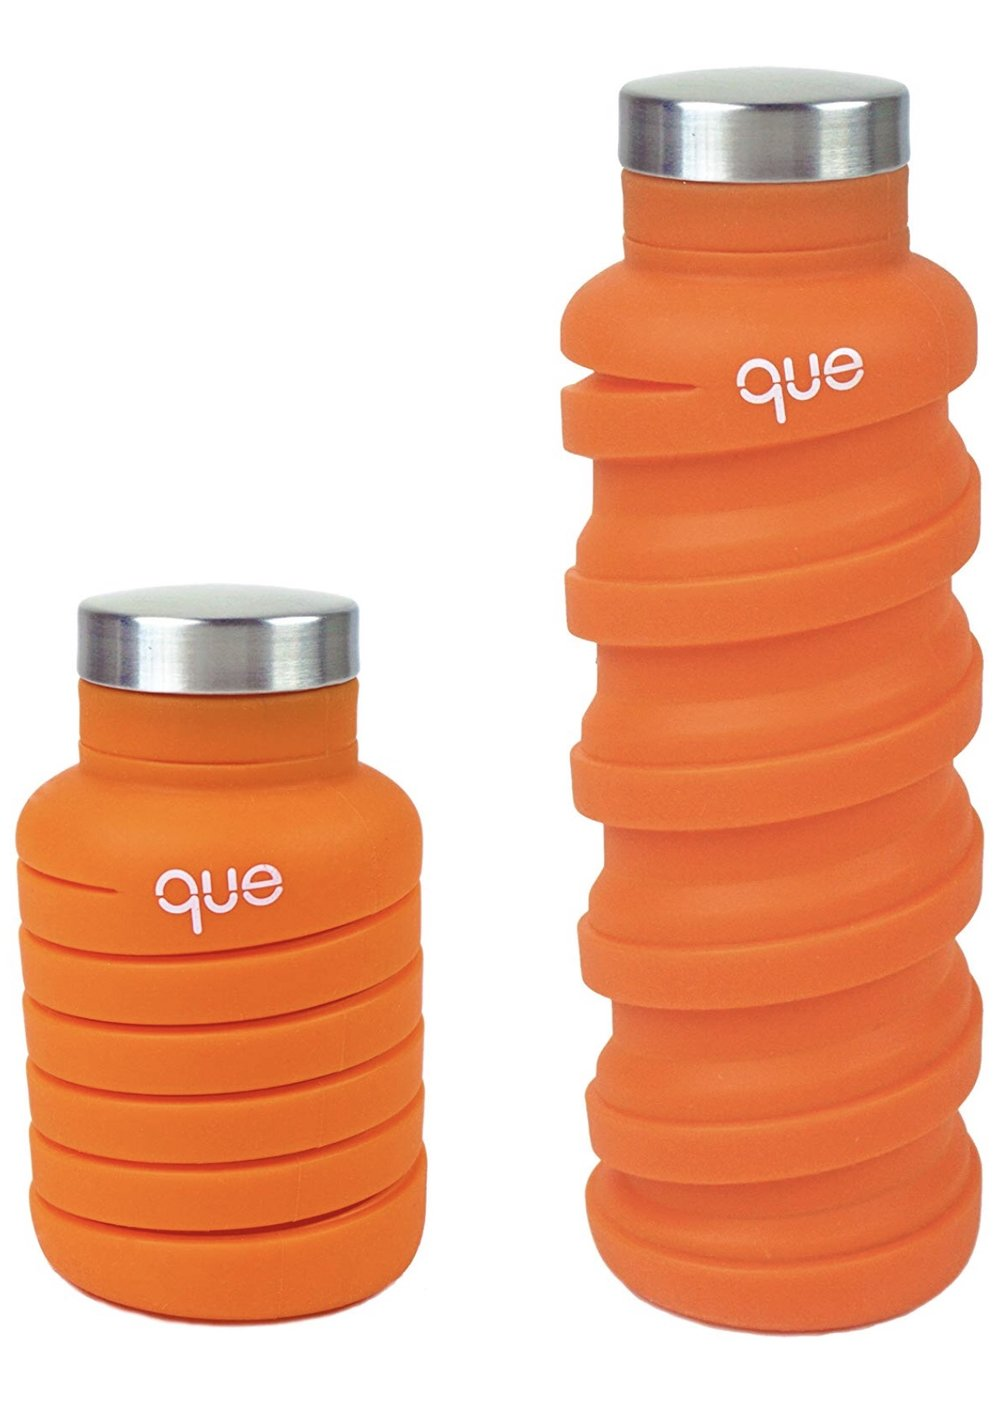 A Que Collapsible Water Bottle